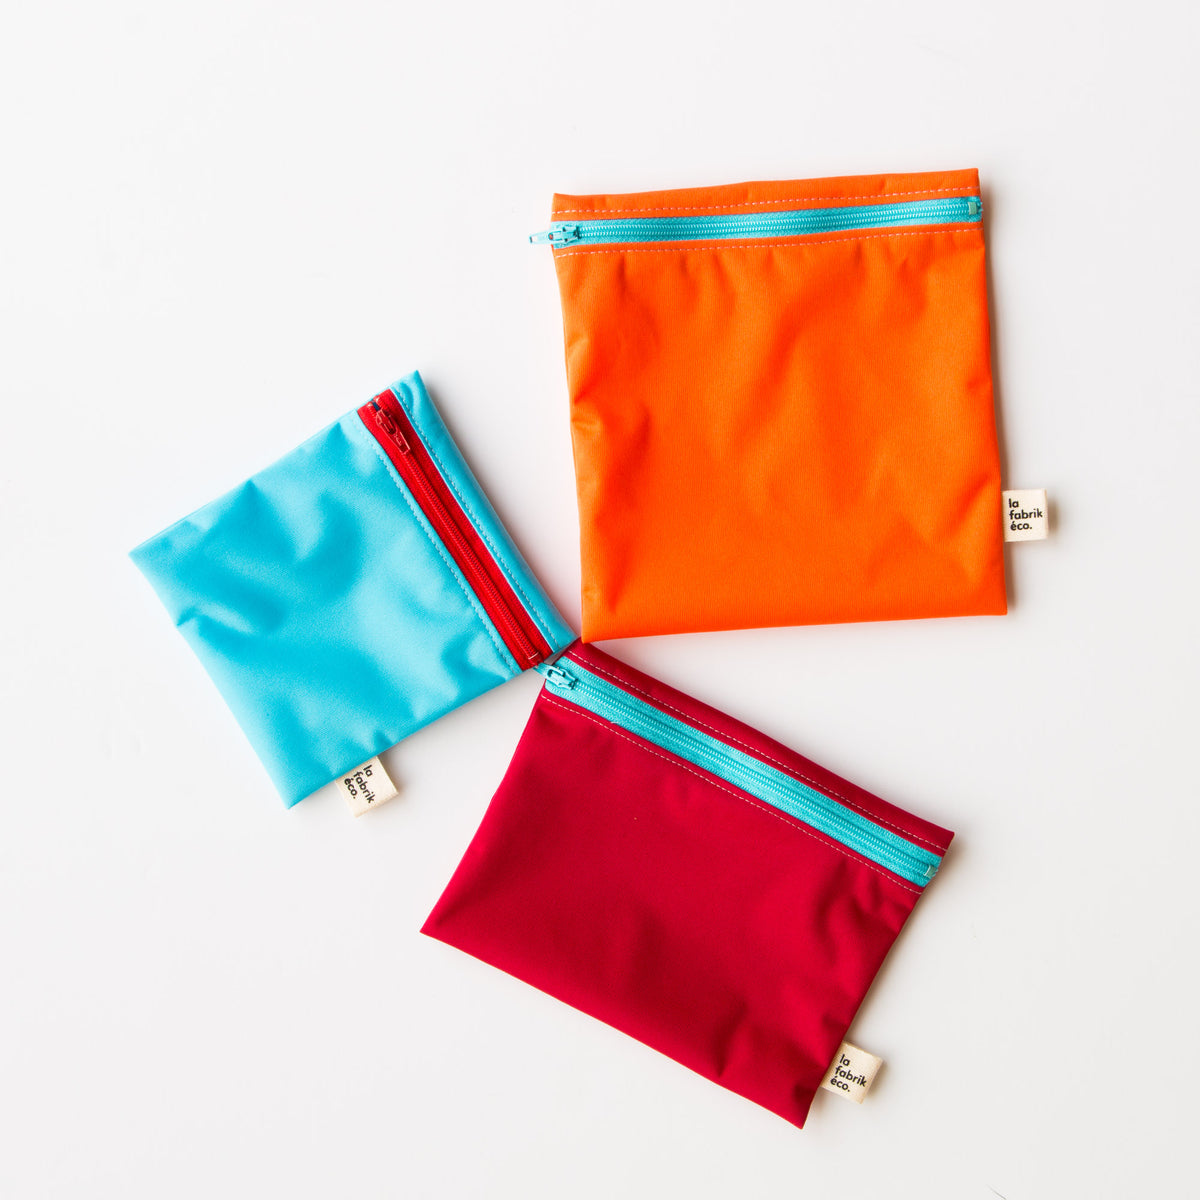 Reusable Snack & Sandwich Bag Trio - Food Safe & Eco-friendly - Sold Online by Chic & Basta